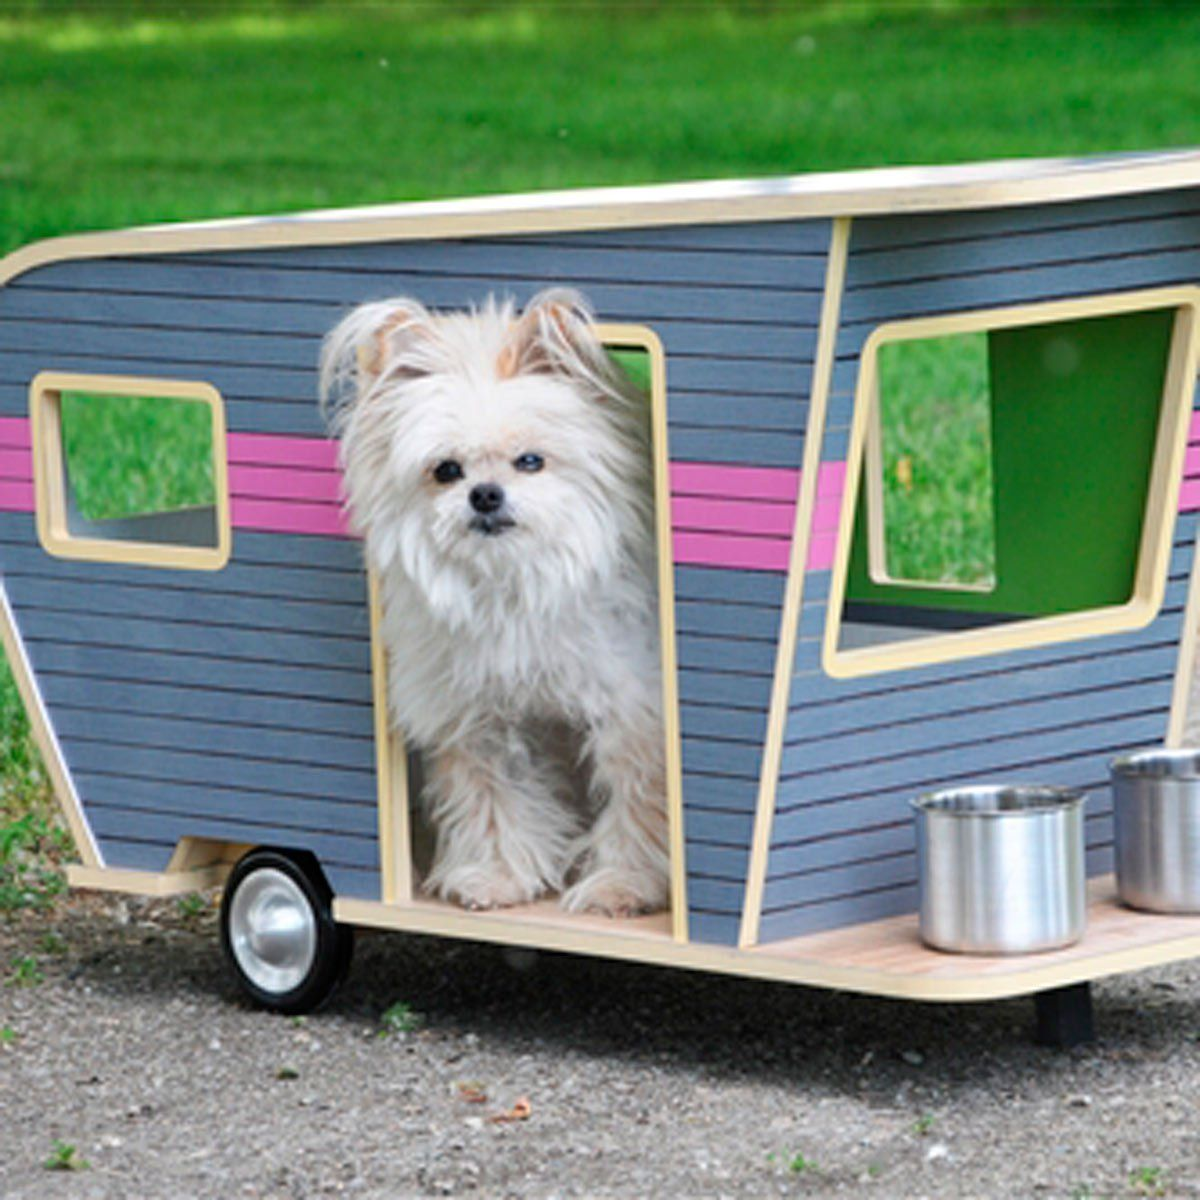 10 Most Outrageous Dog Beds Dog trailer, Cool dog houses